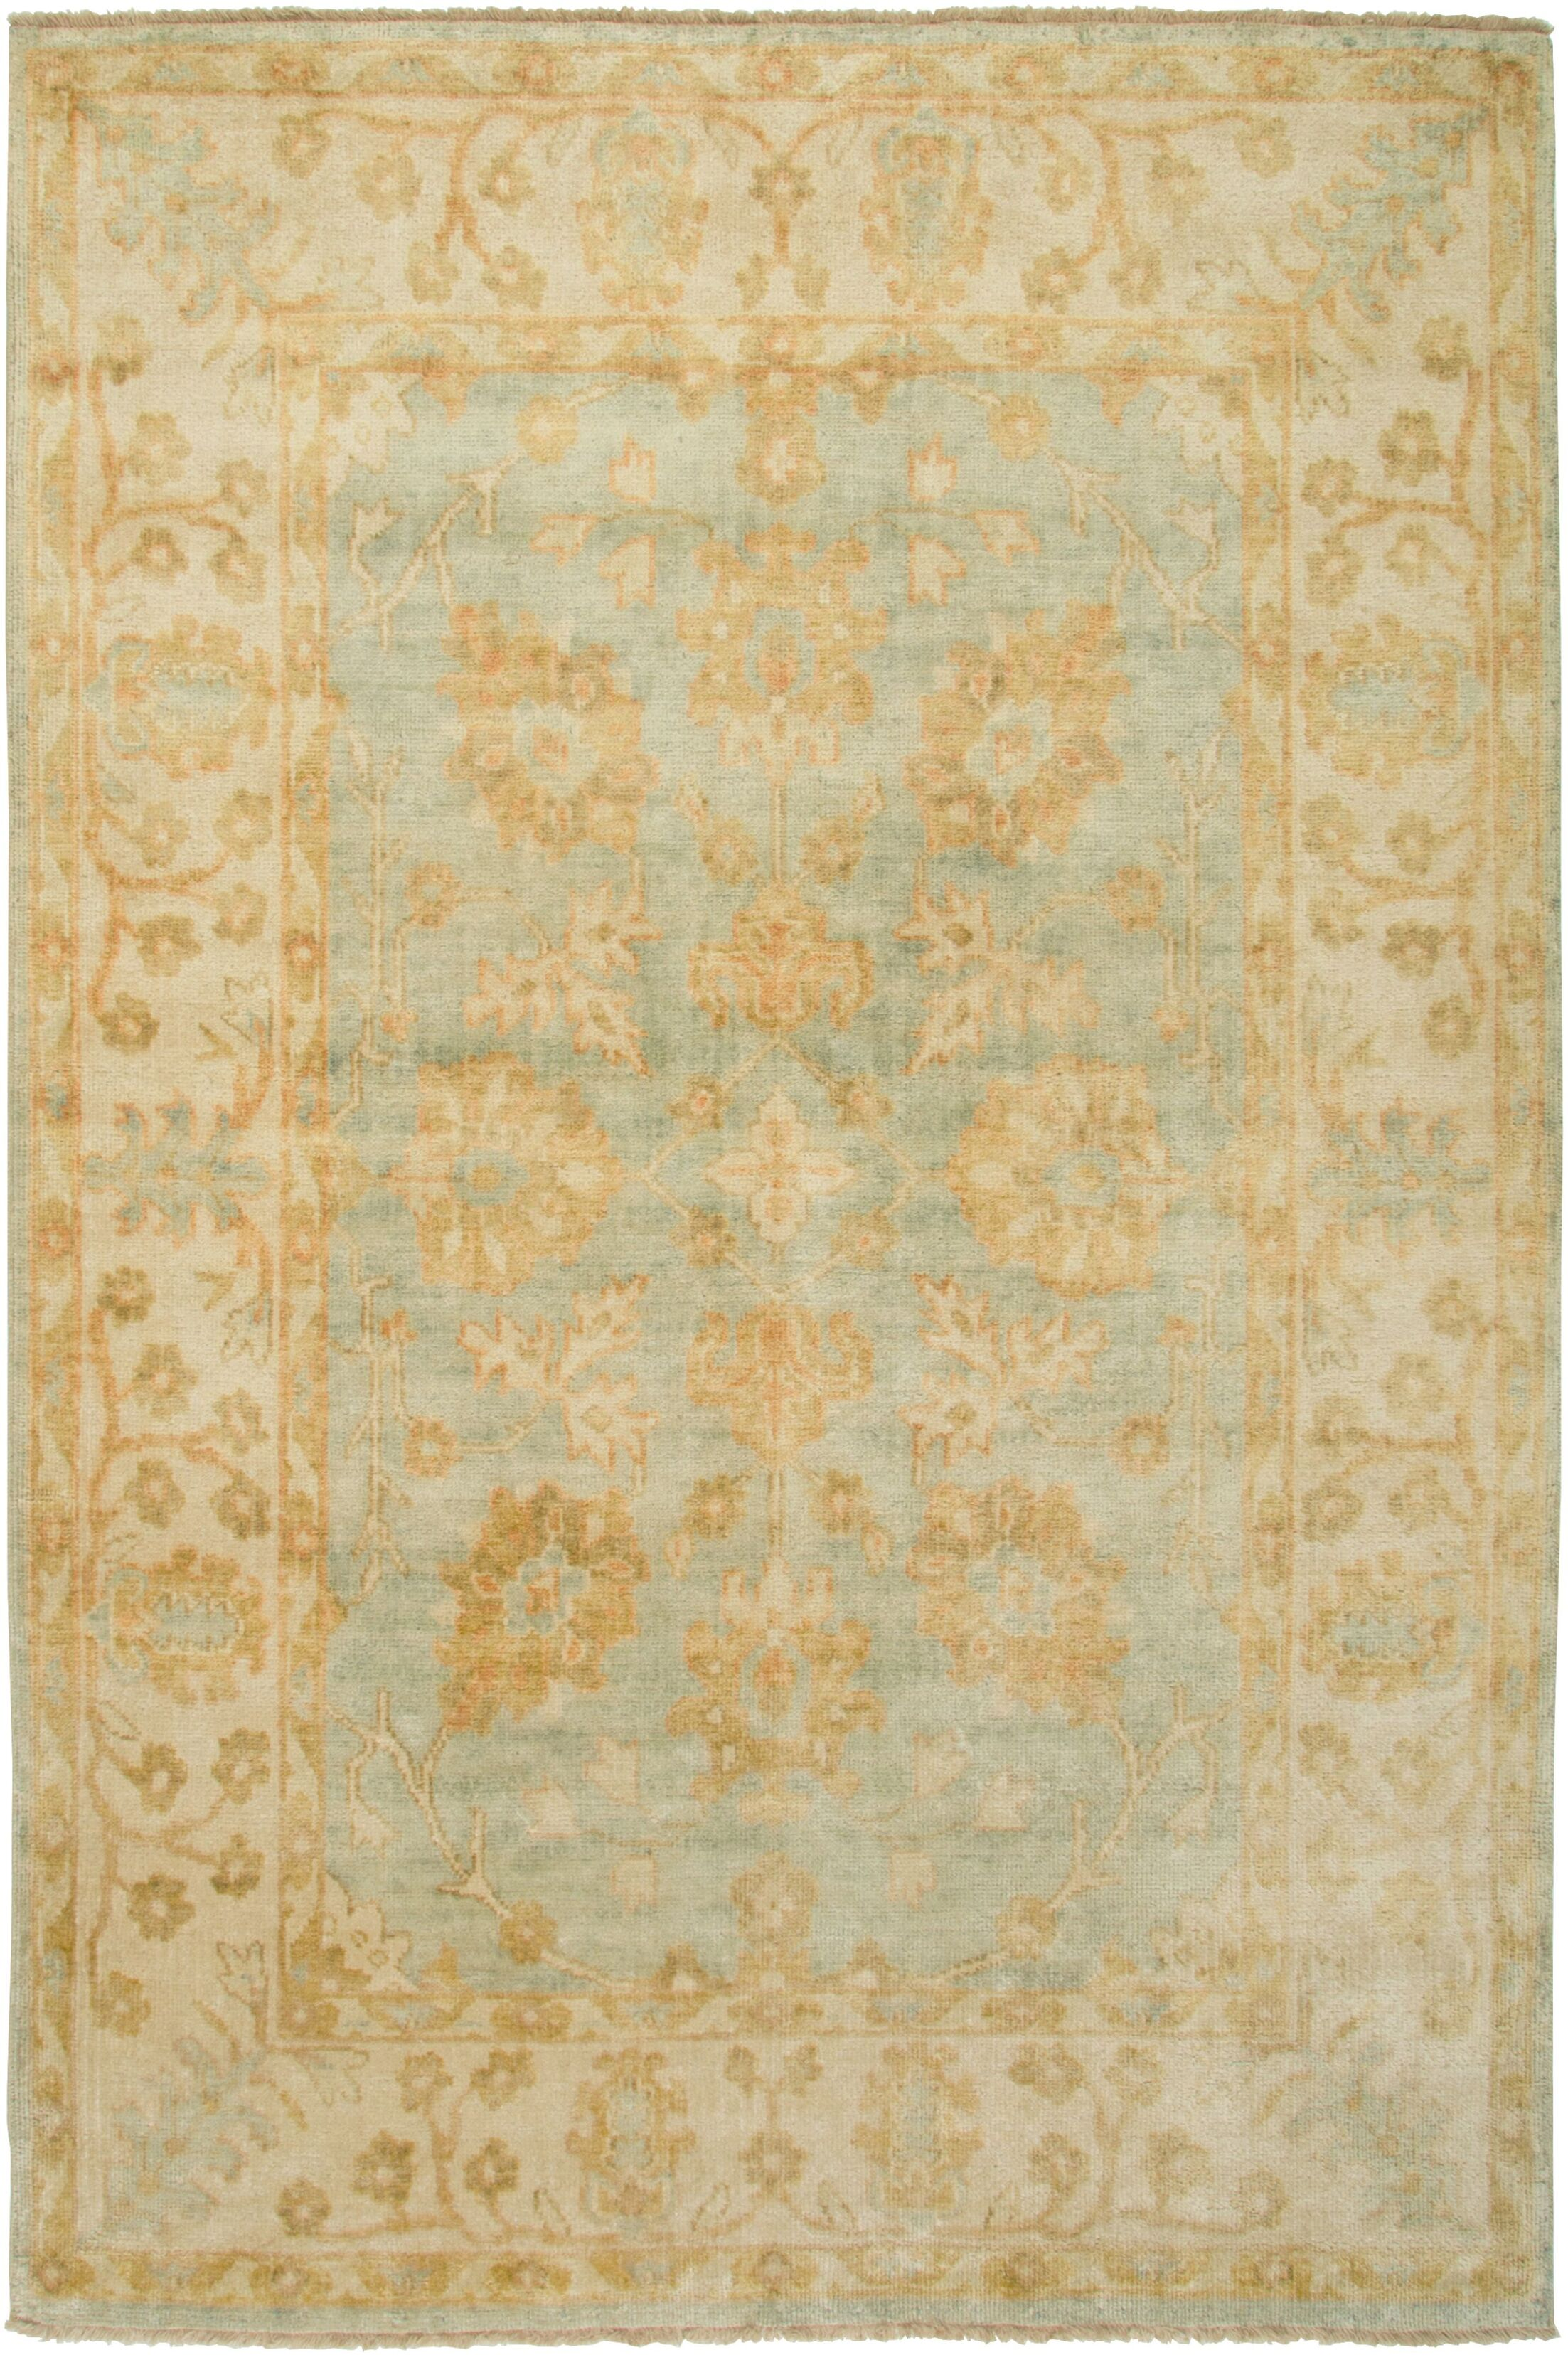 Cabinda Hand-Knotted Beige Area Rug Rug Size: Rectangle 3'6